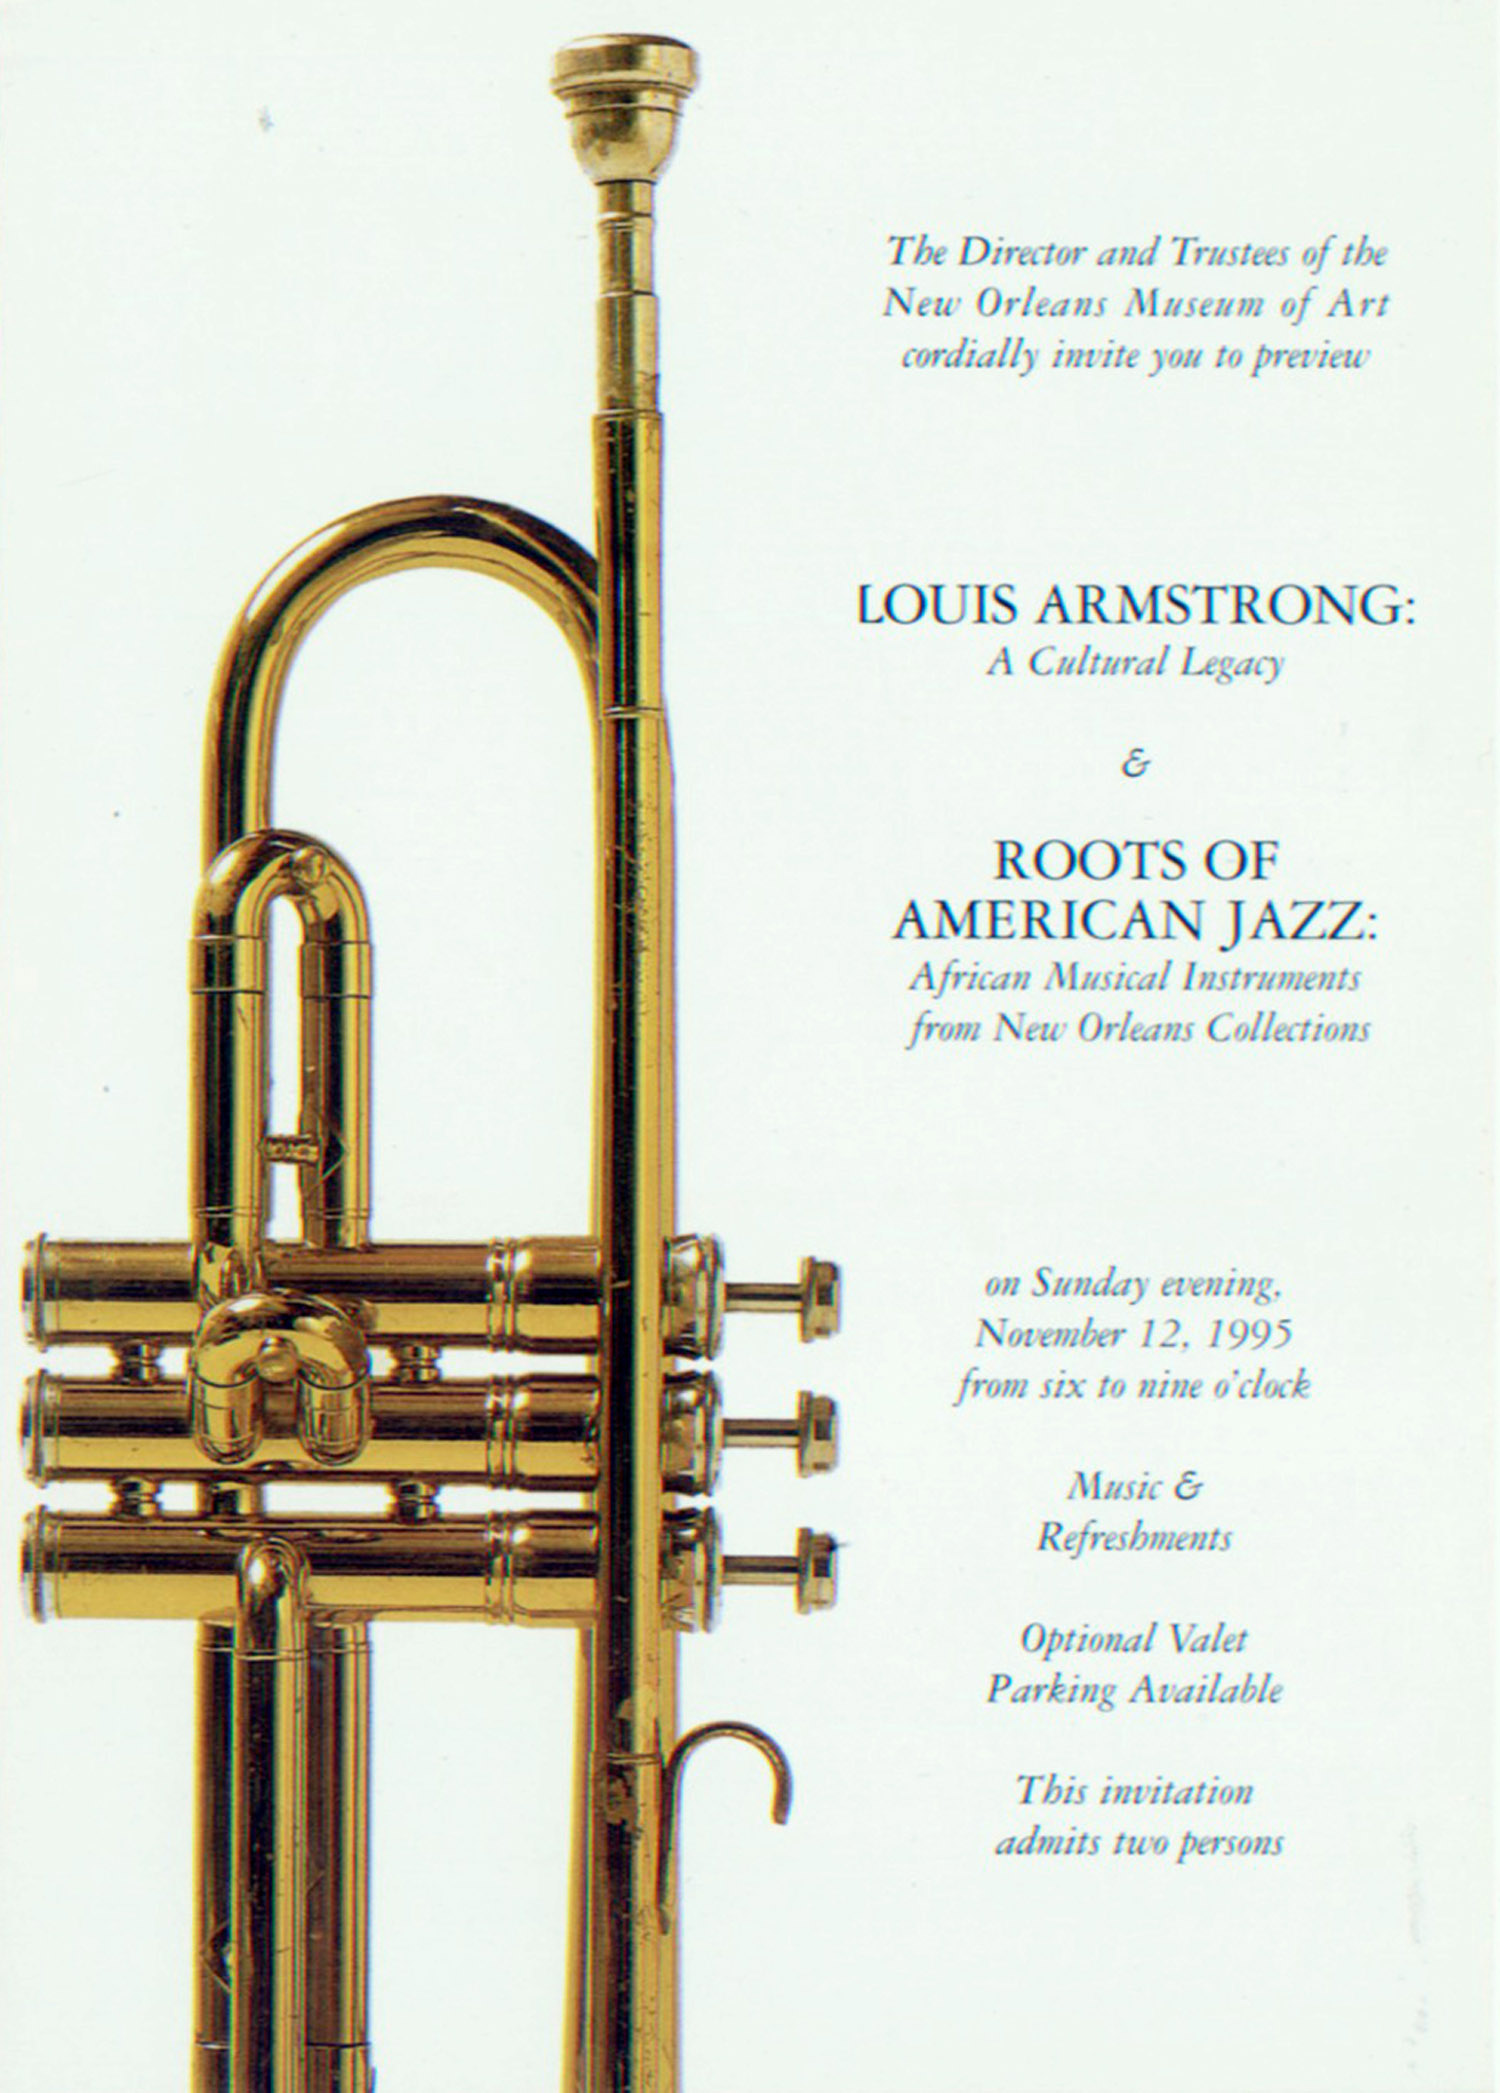 """Invitation to the preview for """"Louis Armstrong: A Cultural Legacy"""" at the New Orleans Museum of Art"""